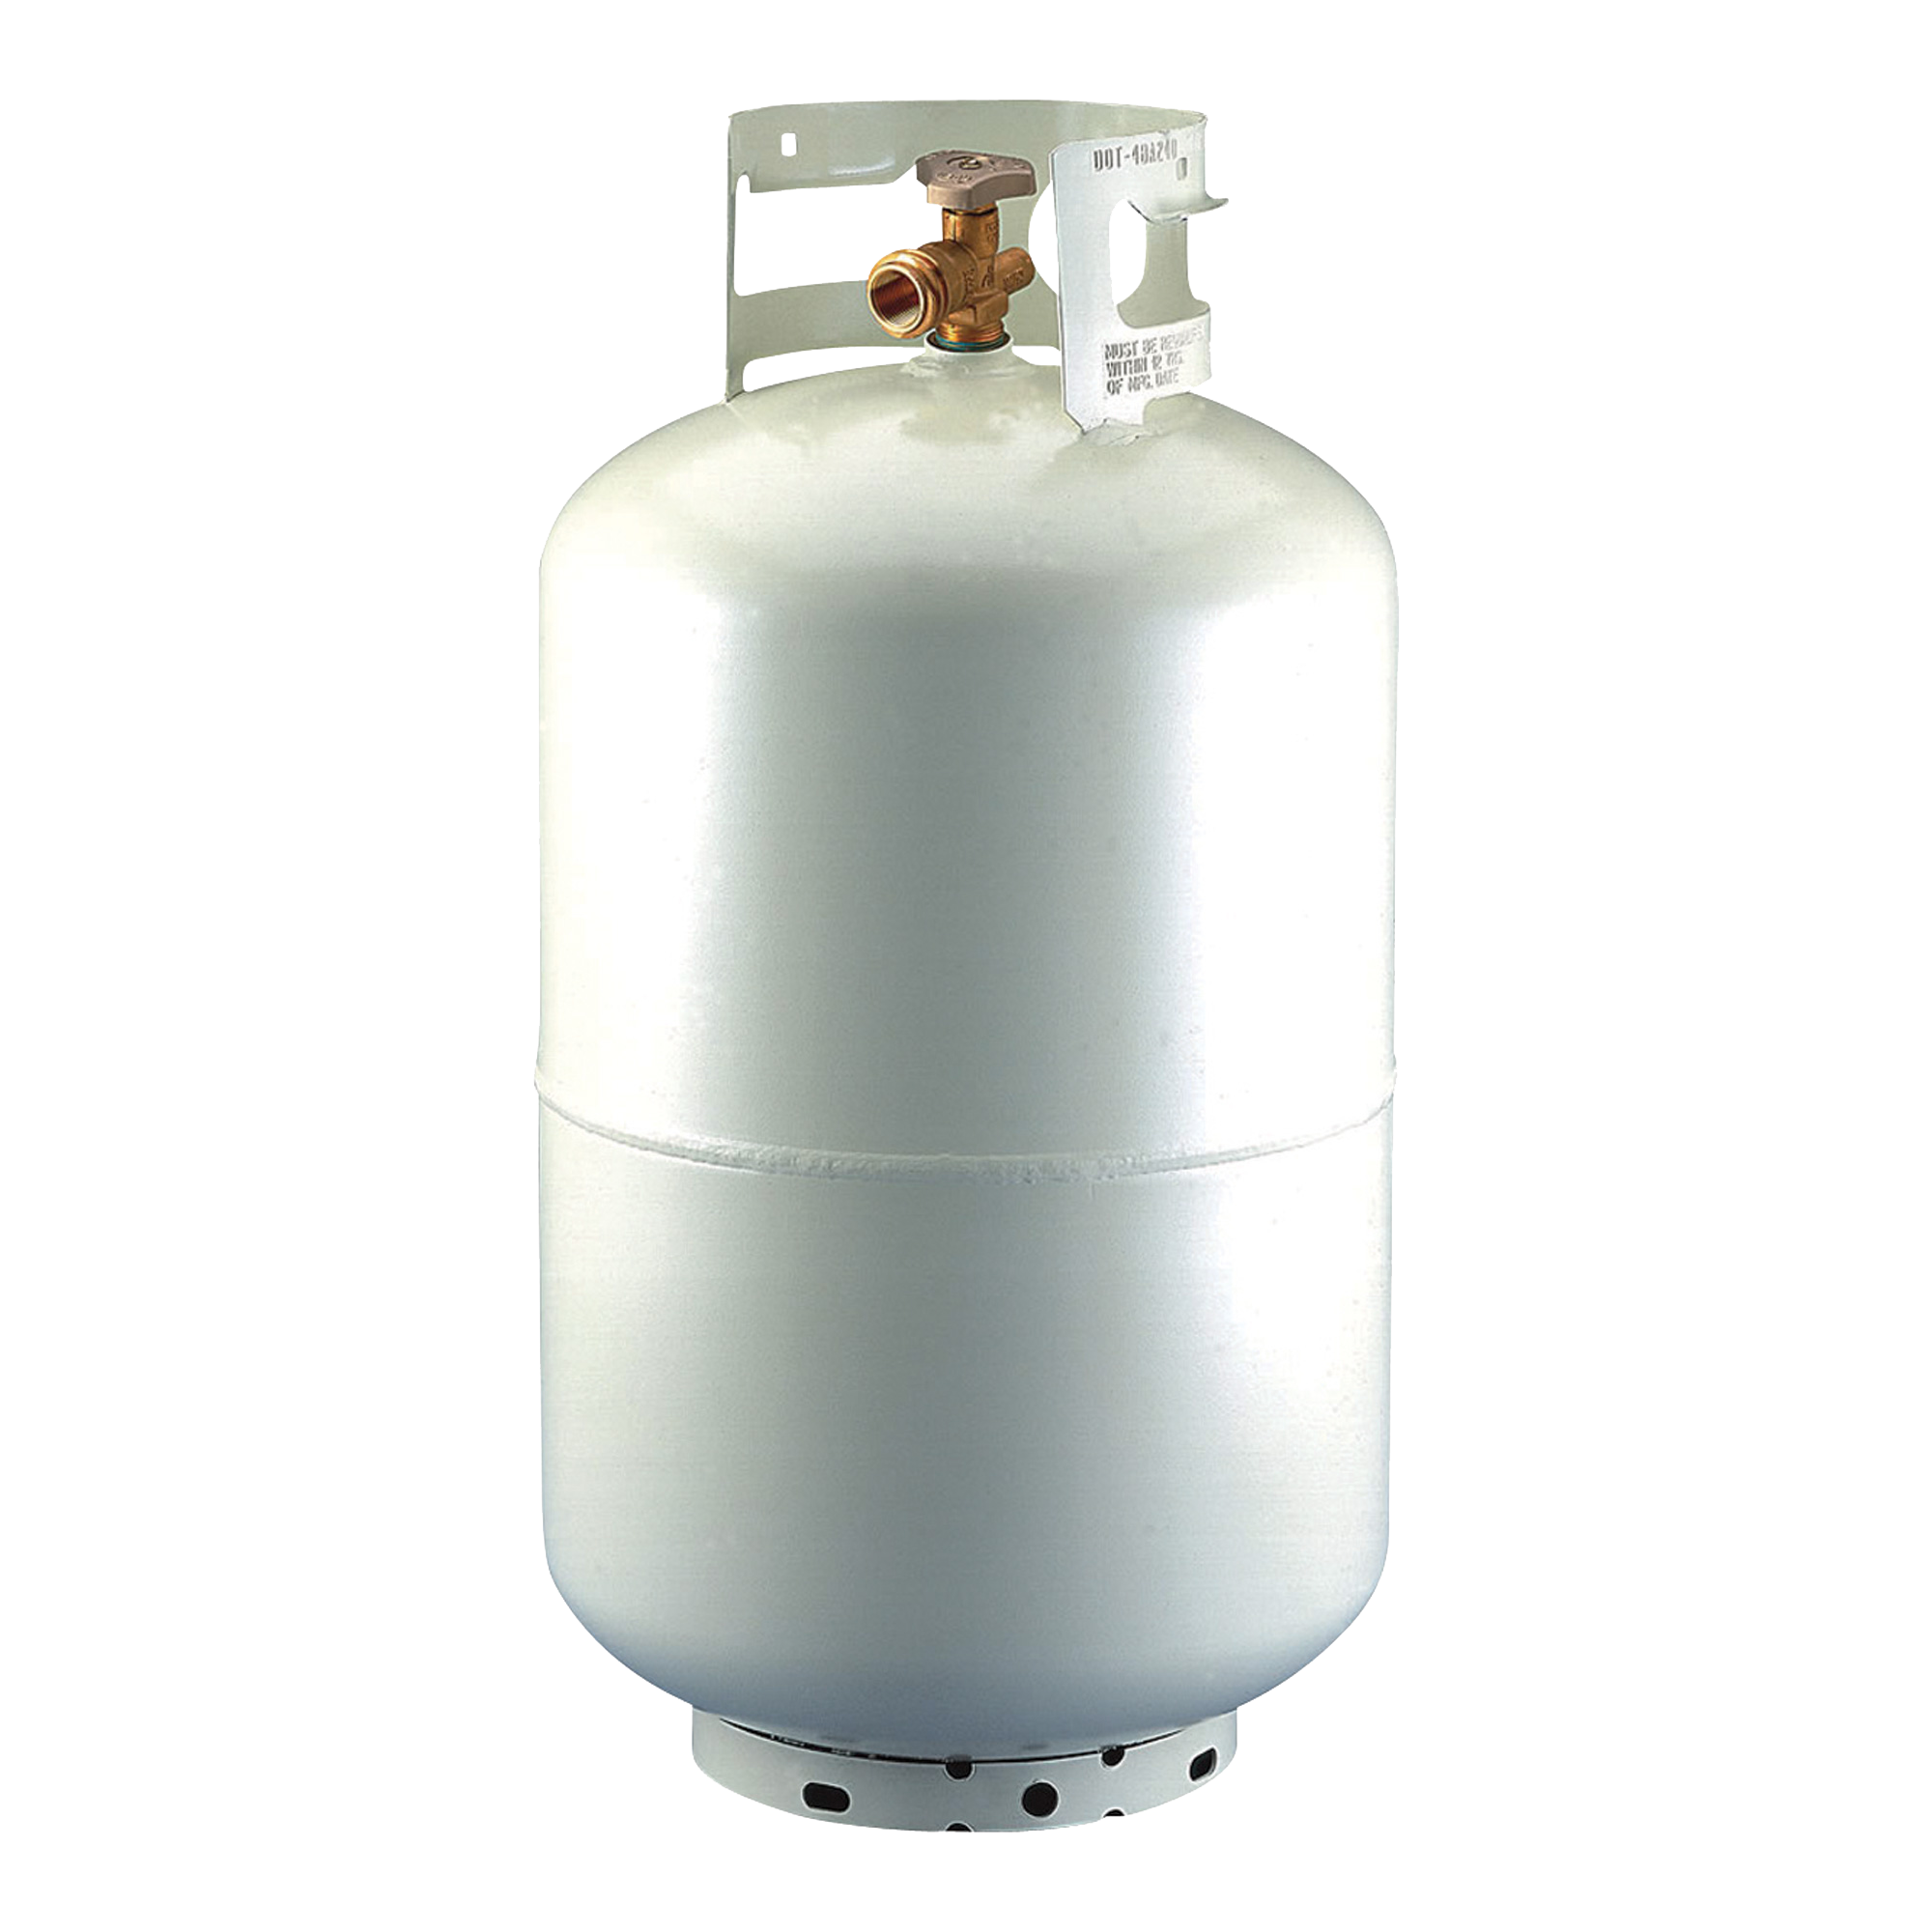 35 000 btu propane forced air direct fired propane heater for rent